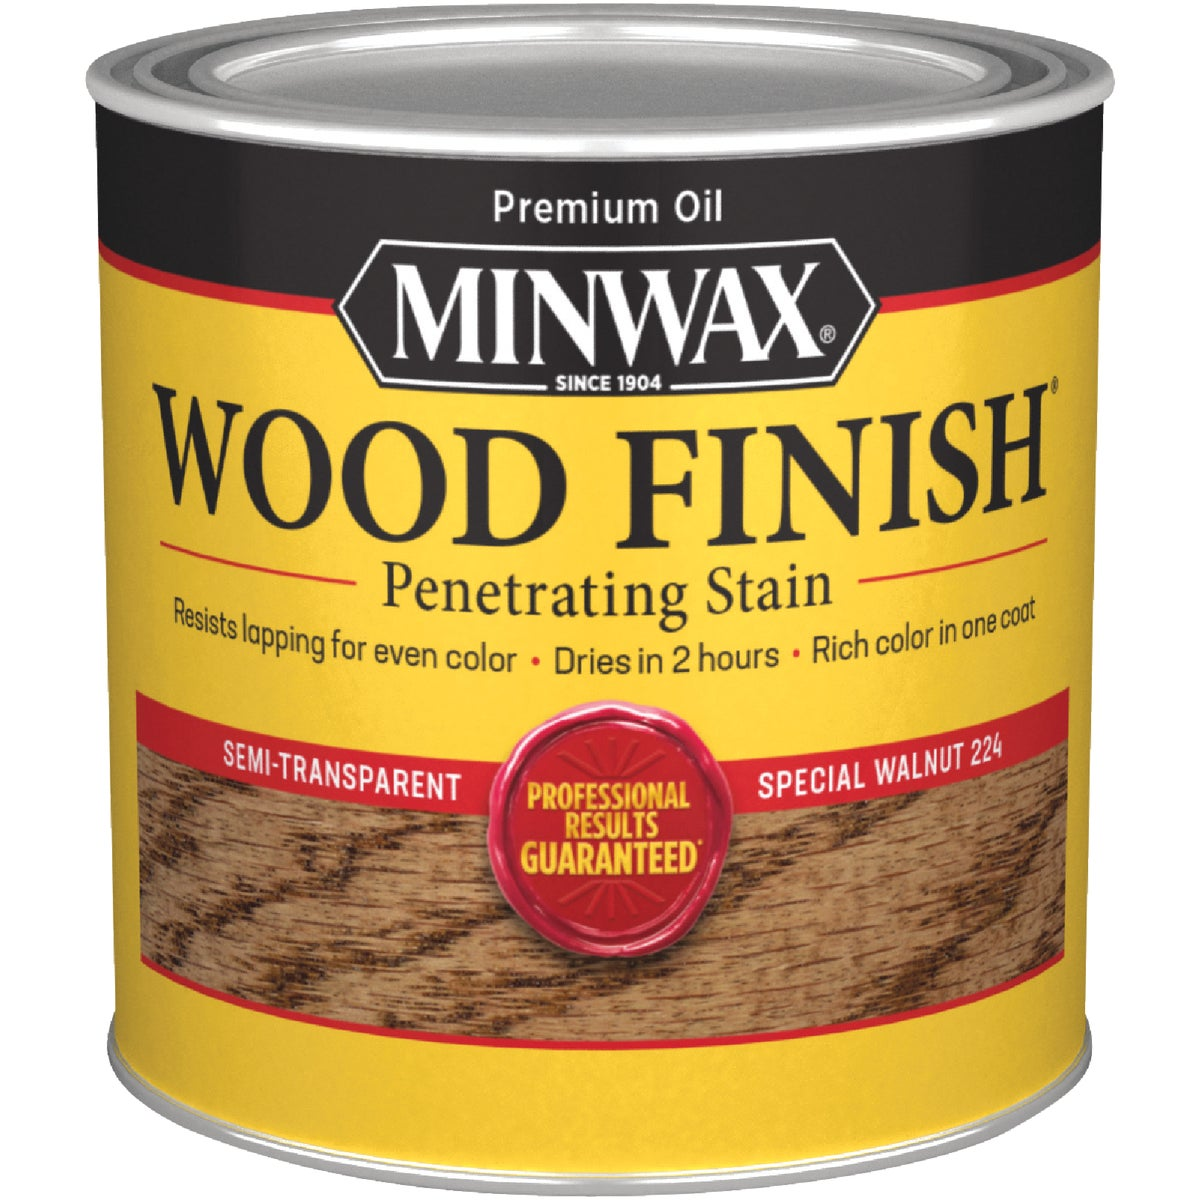 SPEC WALNUT WOOD STAIN - 222404444 by Minwax Company